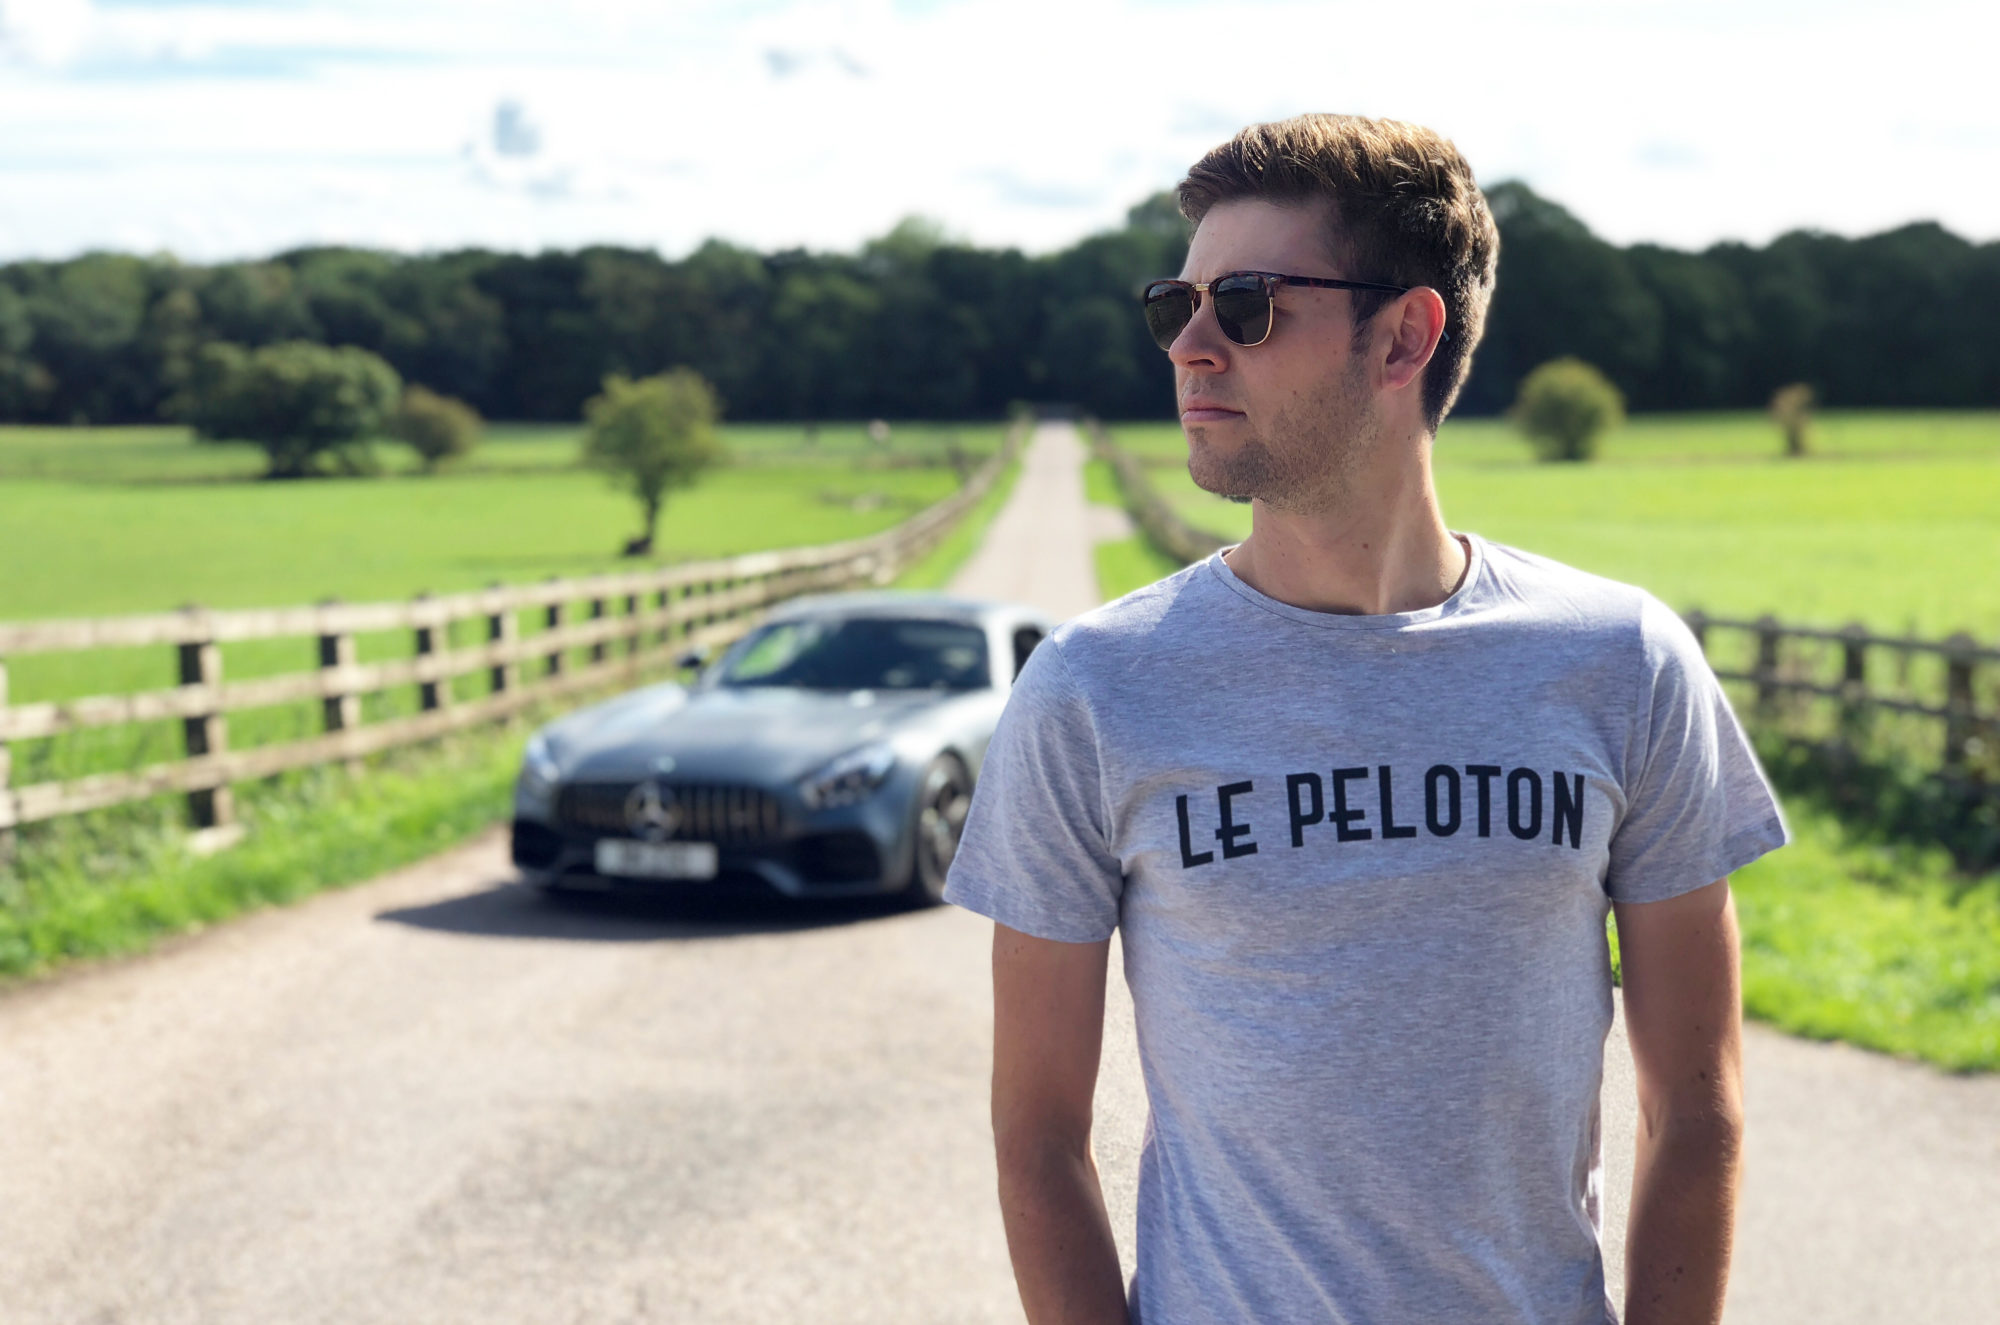 Le peloton t-shirt from The Broom Wagon